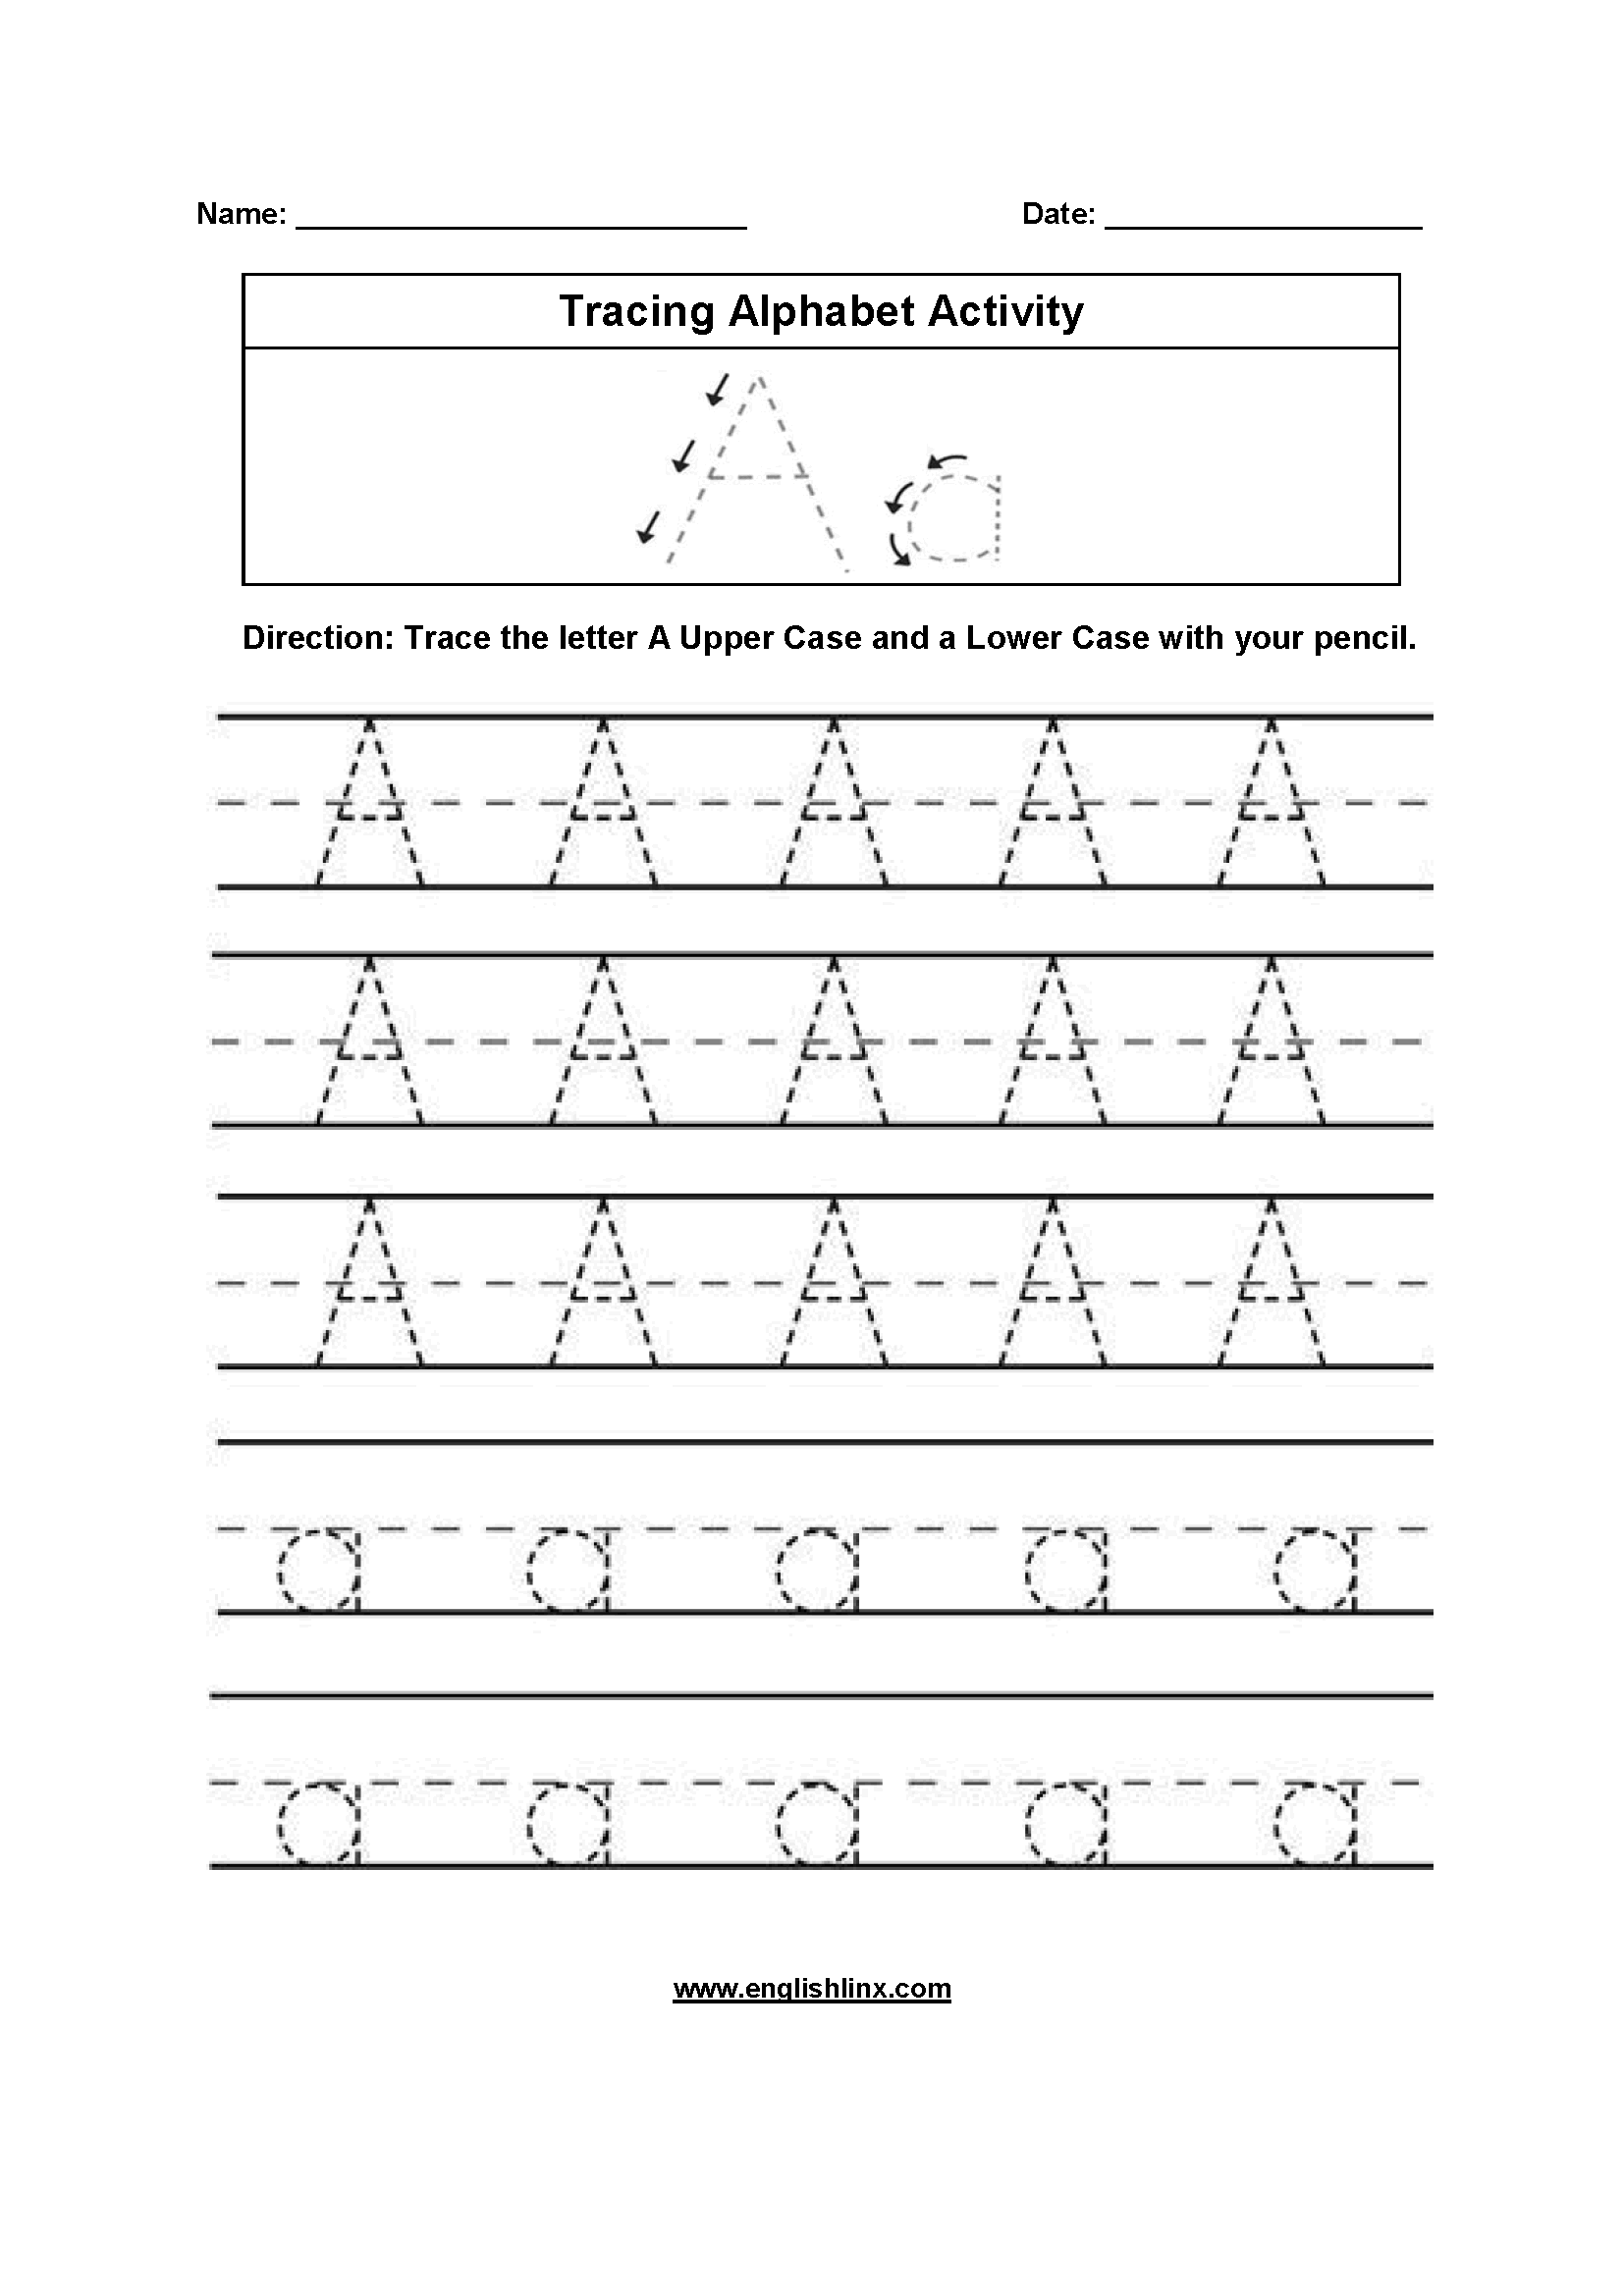 Worksheets Writing Alphabet Worksheets alphabet worksheets tracing worksheets